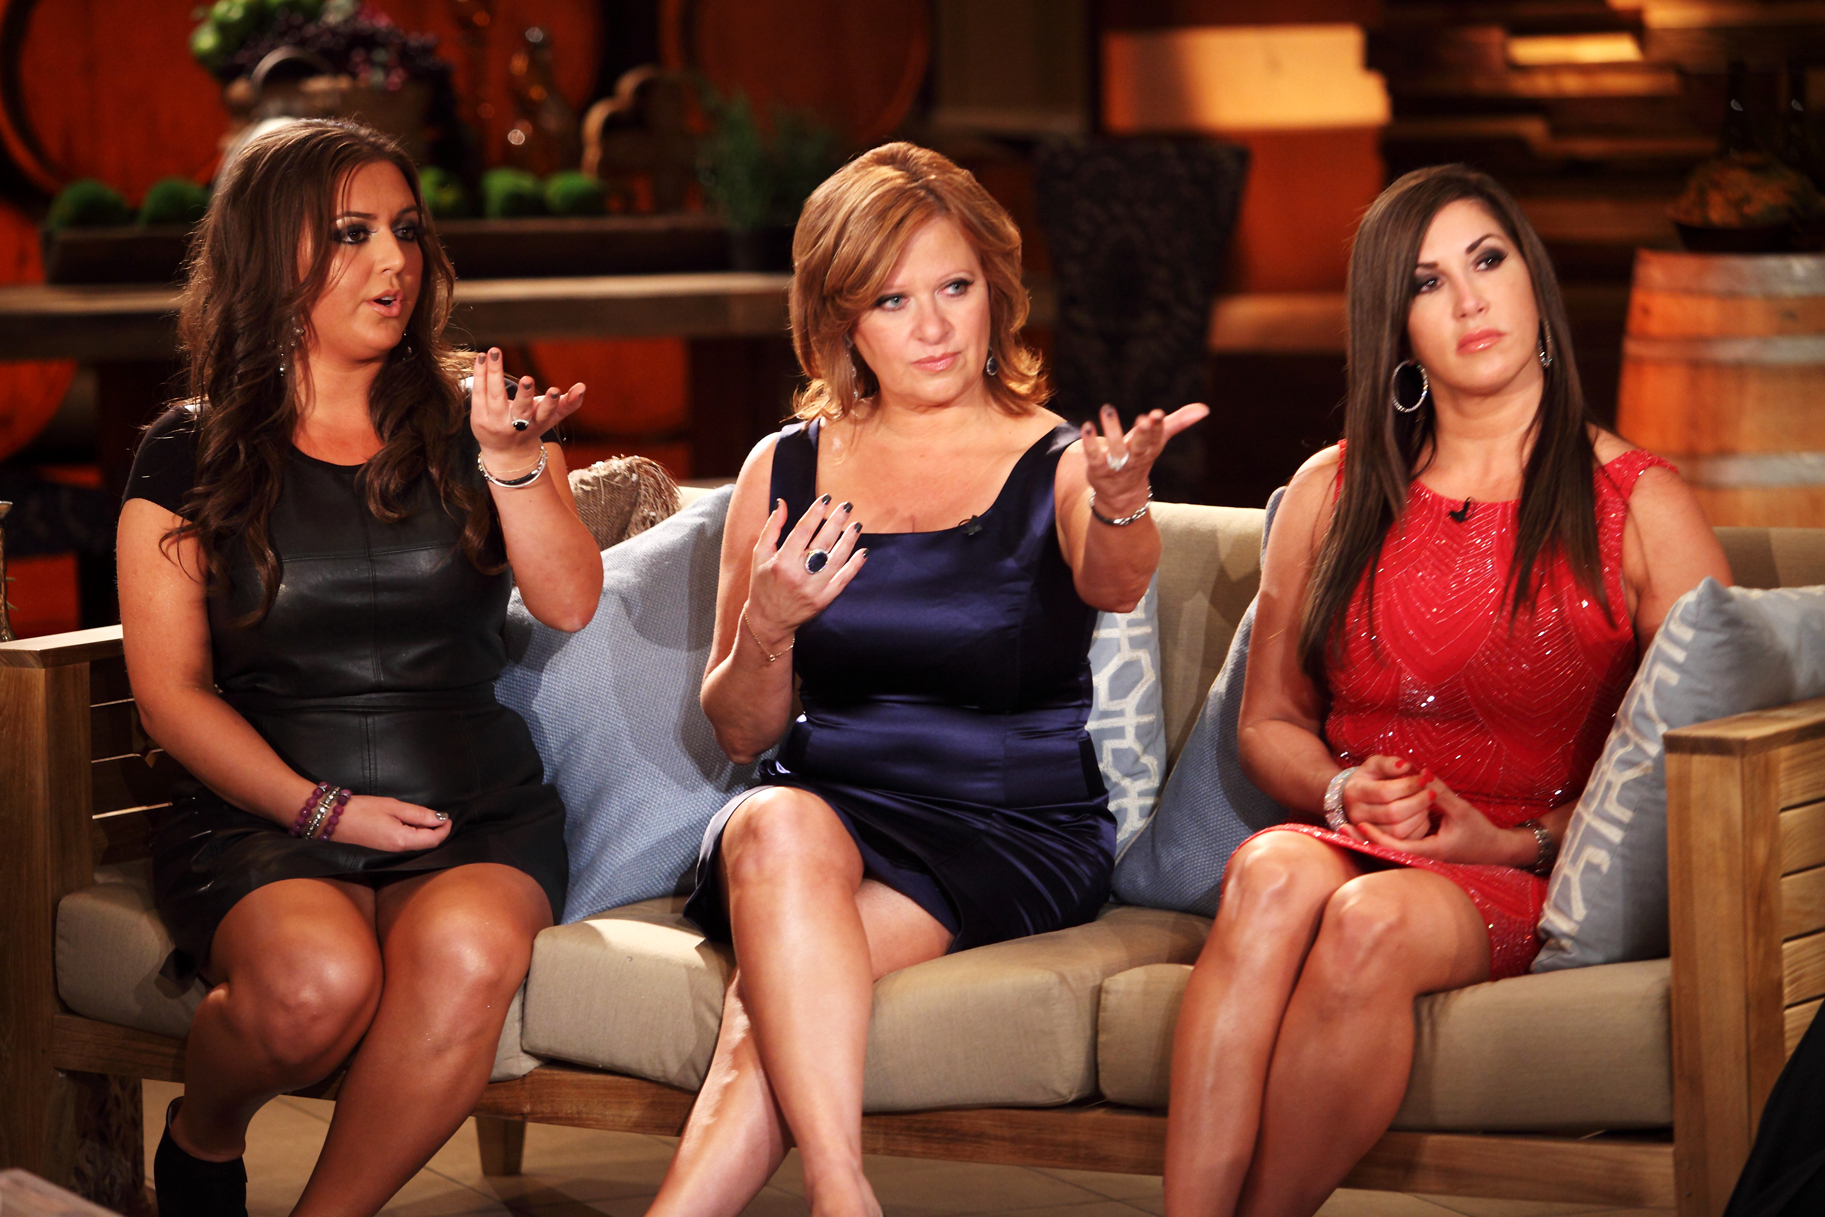 Watch Episode 21: Reunion Part 1 | The Real Housewives of